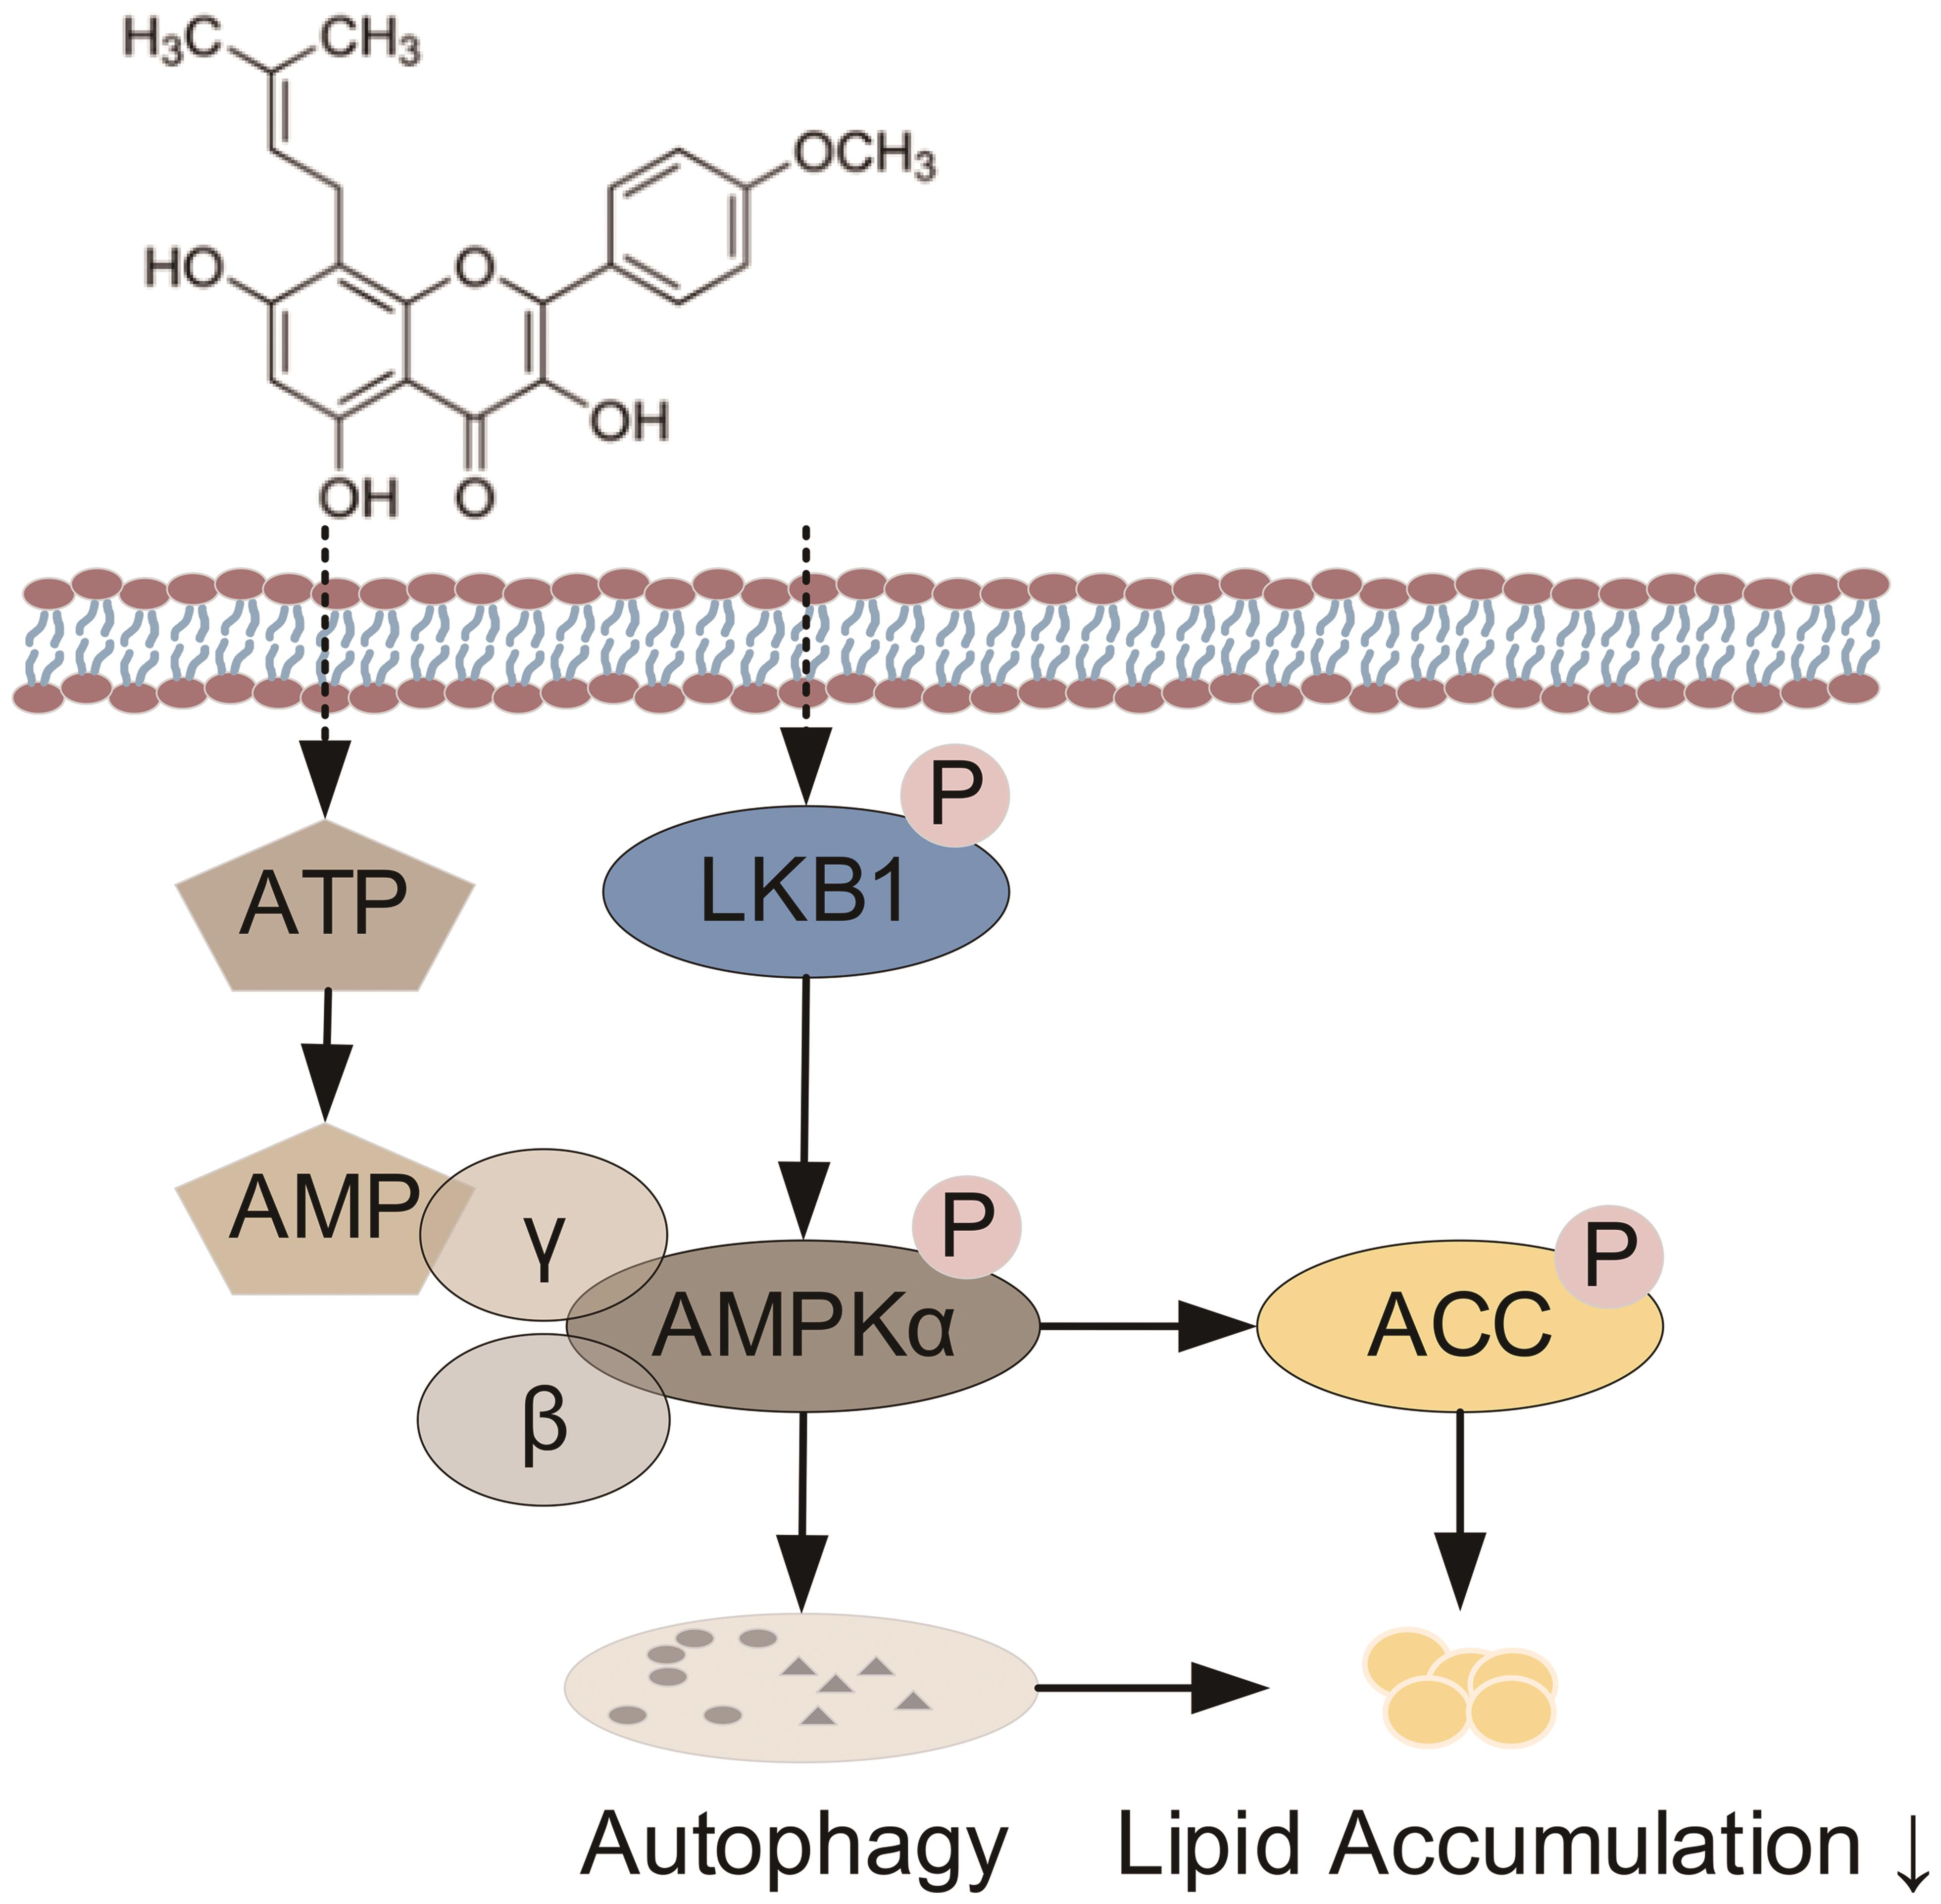 Proposed mechanisms of icaritin on lipid accumulation.